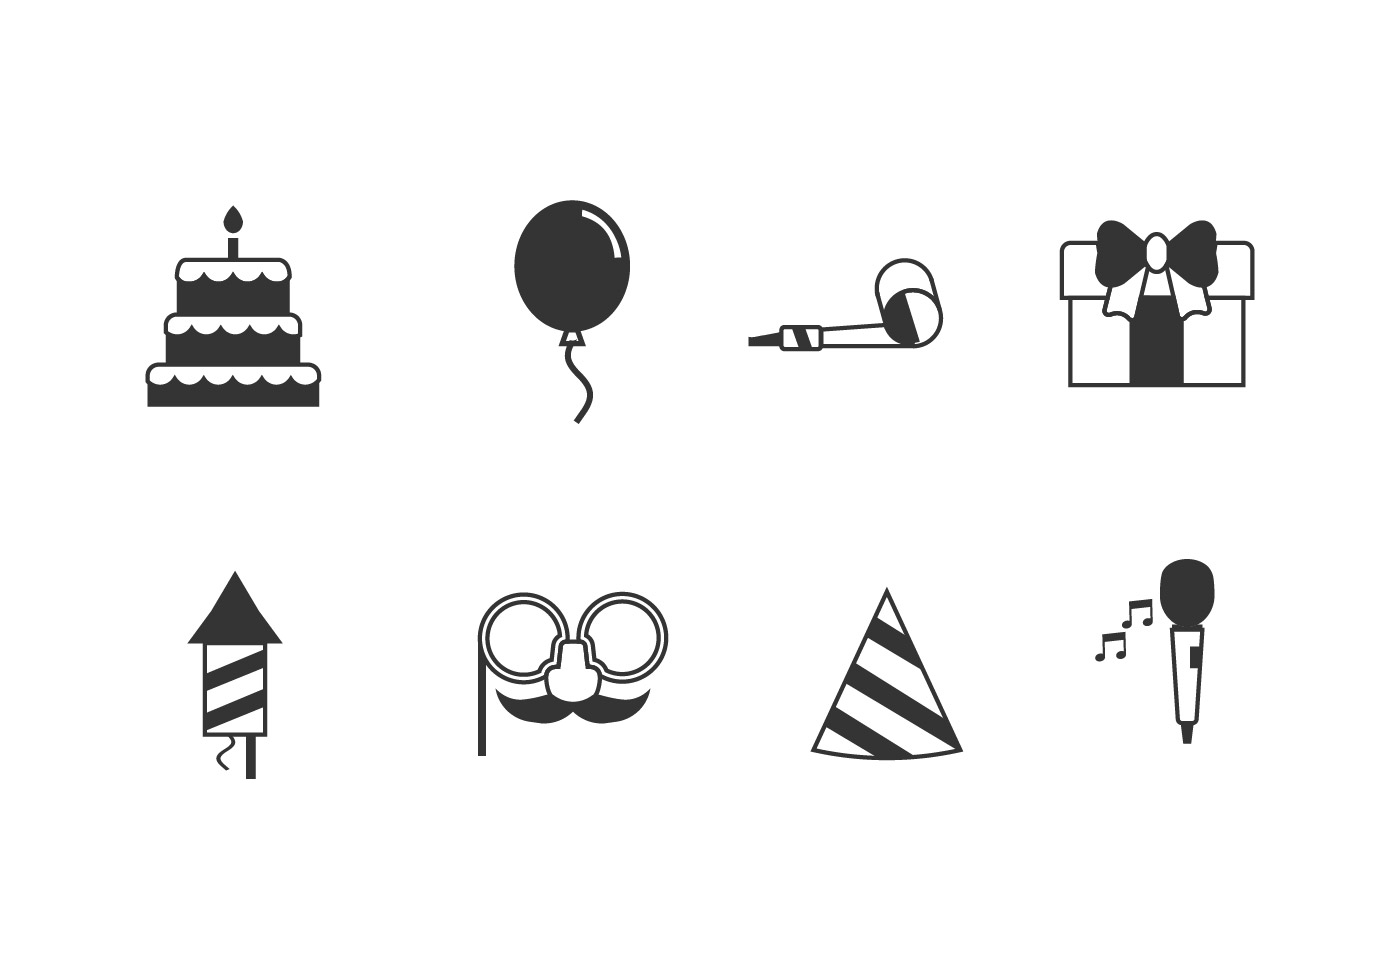 Birthday party set icons - Download Free Vector Art, Stock ...